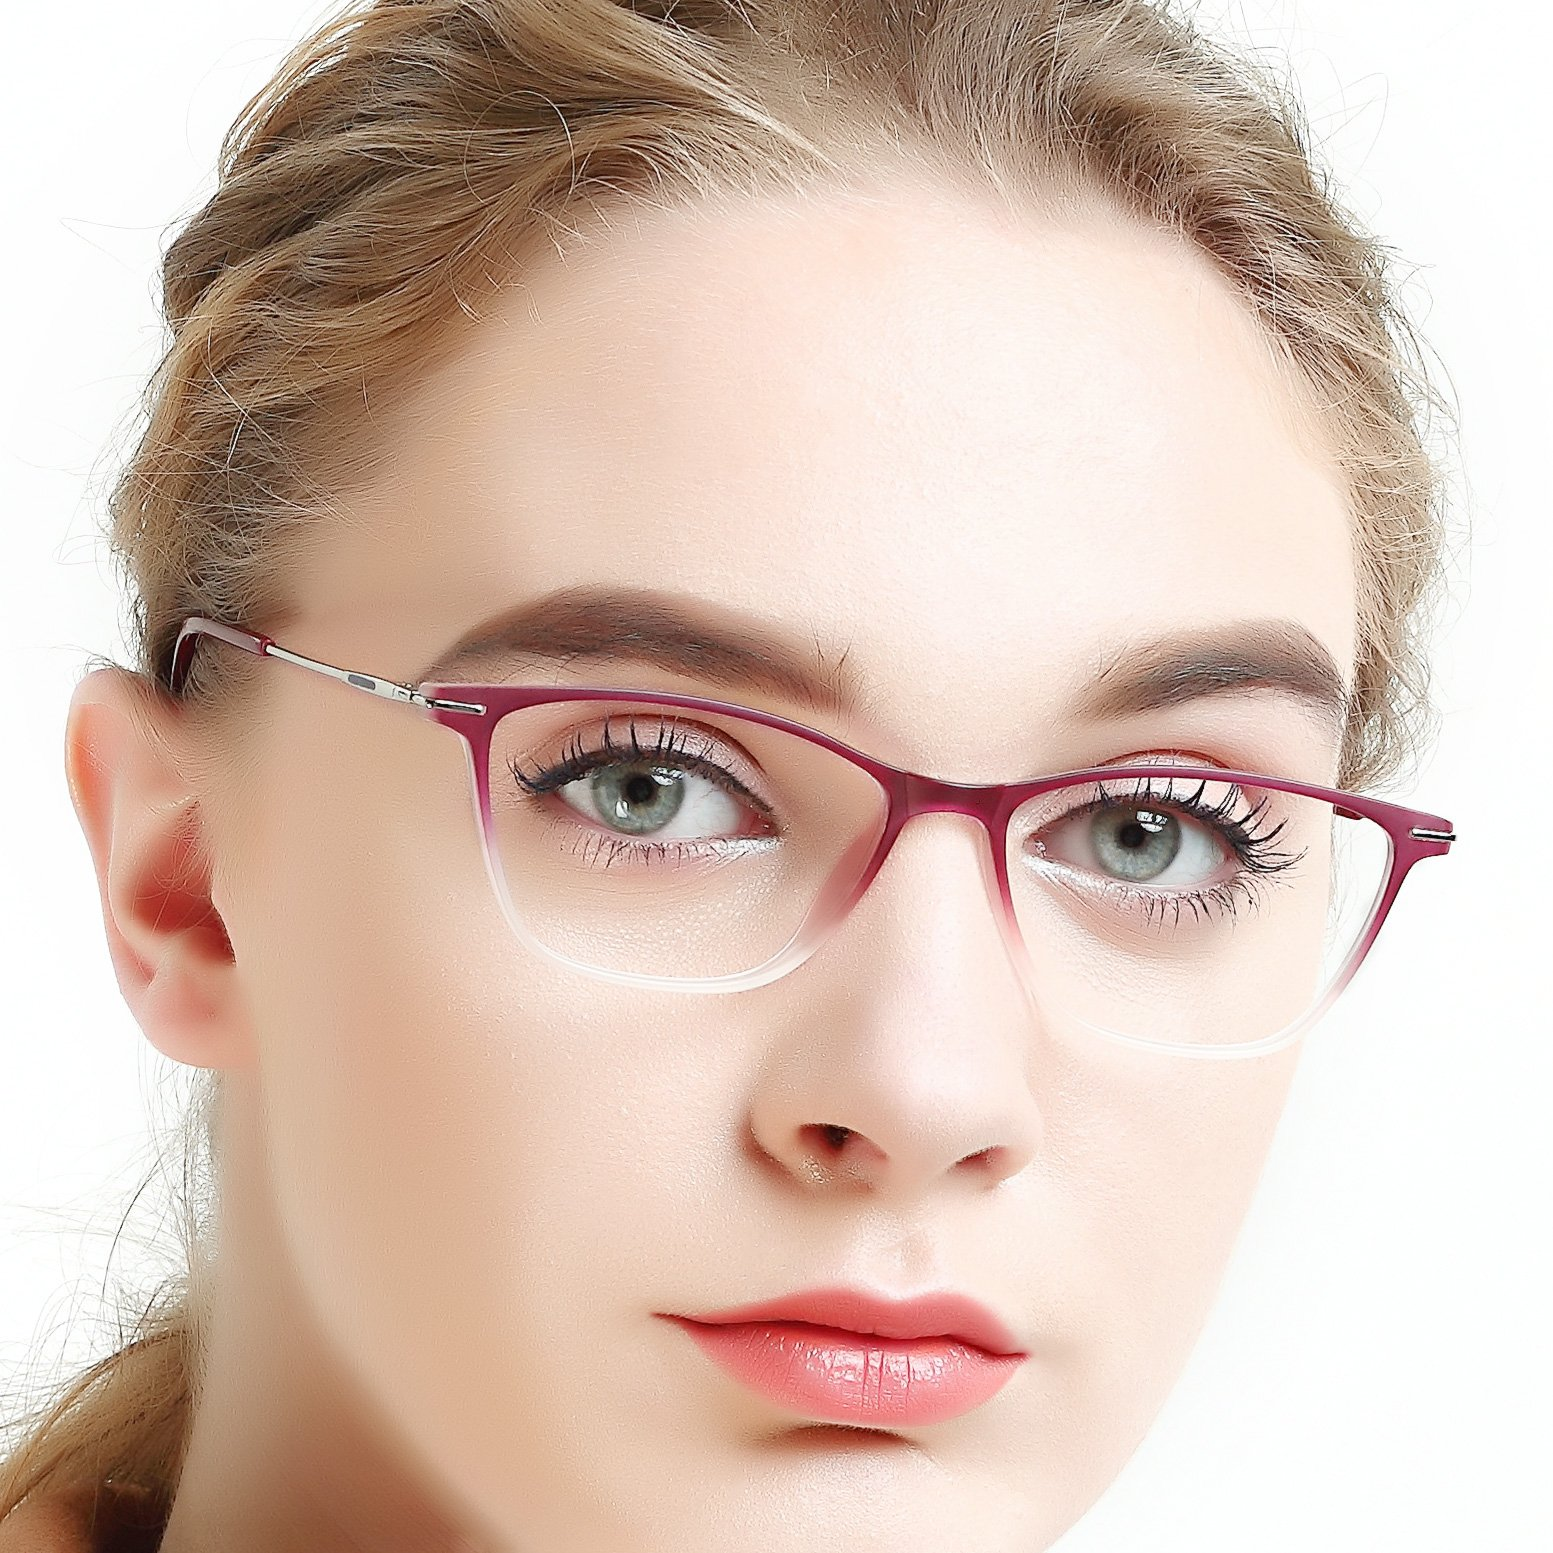 Eyewear Frames-OCCI CHIARI-Rectangle Lightweight Non-Prescription Eyeglasses Frame with Clear Lenses For Womens 52mm